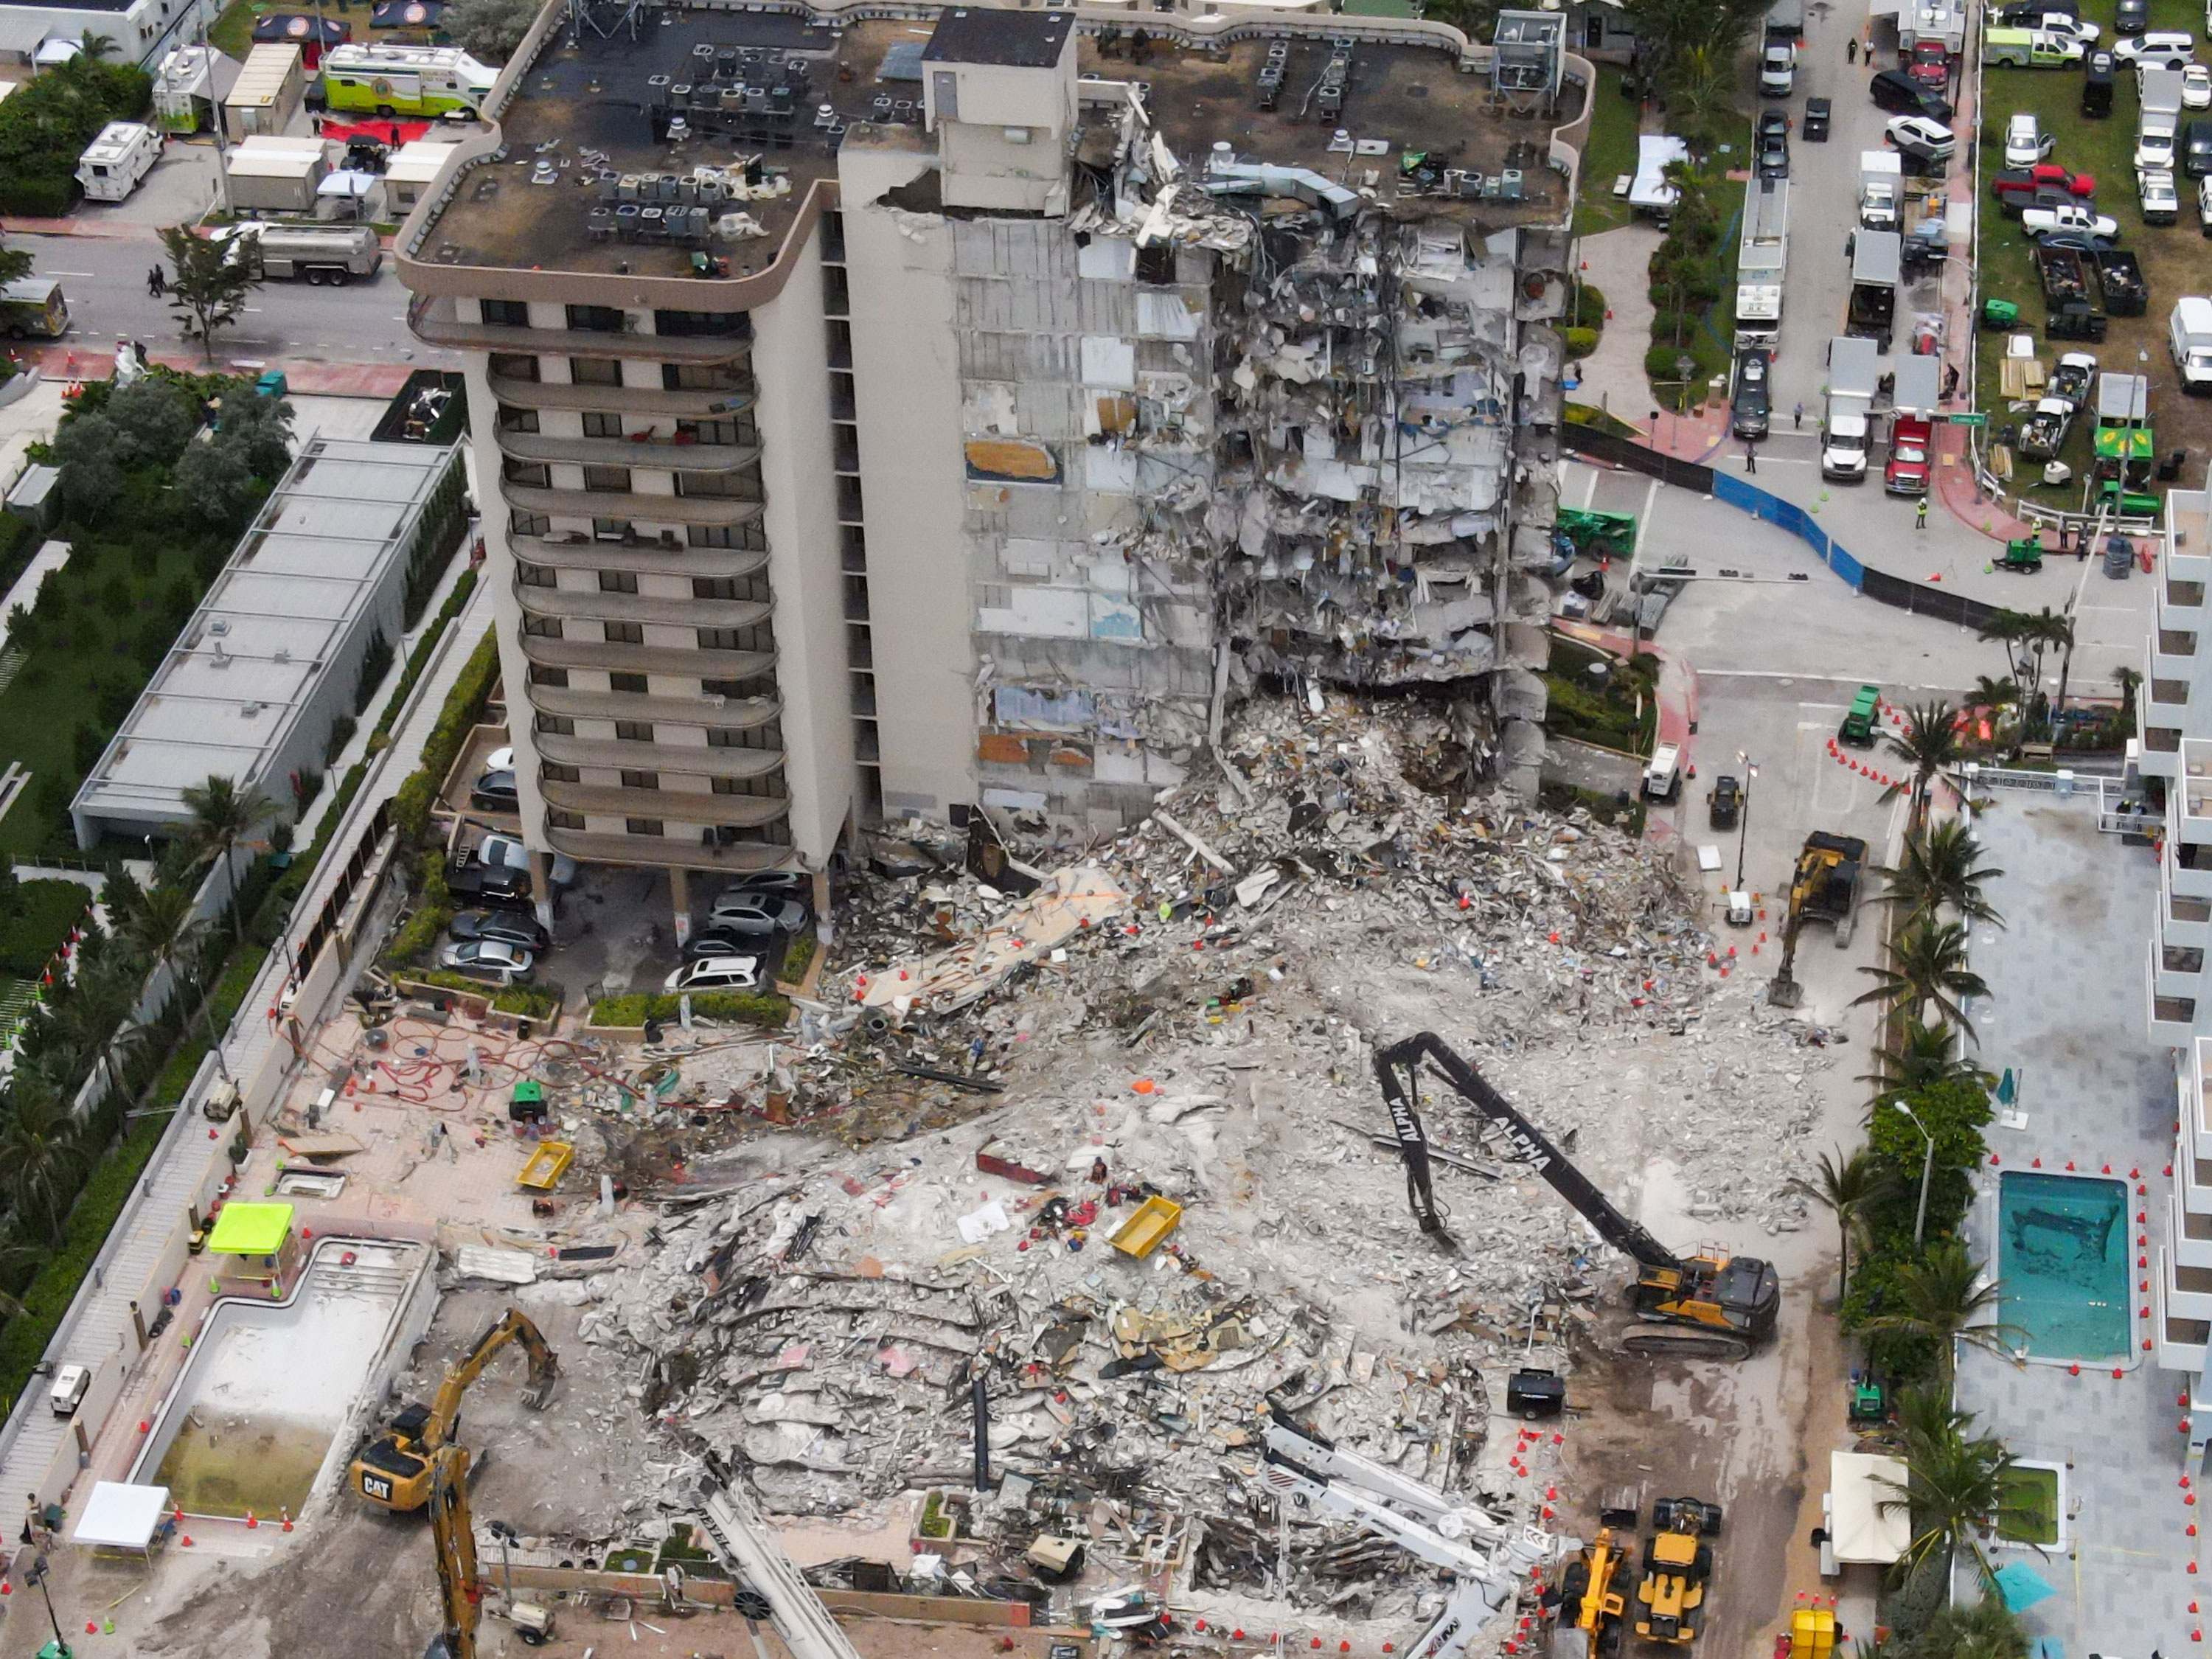 Mayor authorizes demolition of remaining units at Surfside condo collapse site as death toll grows to 22